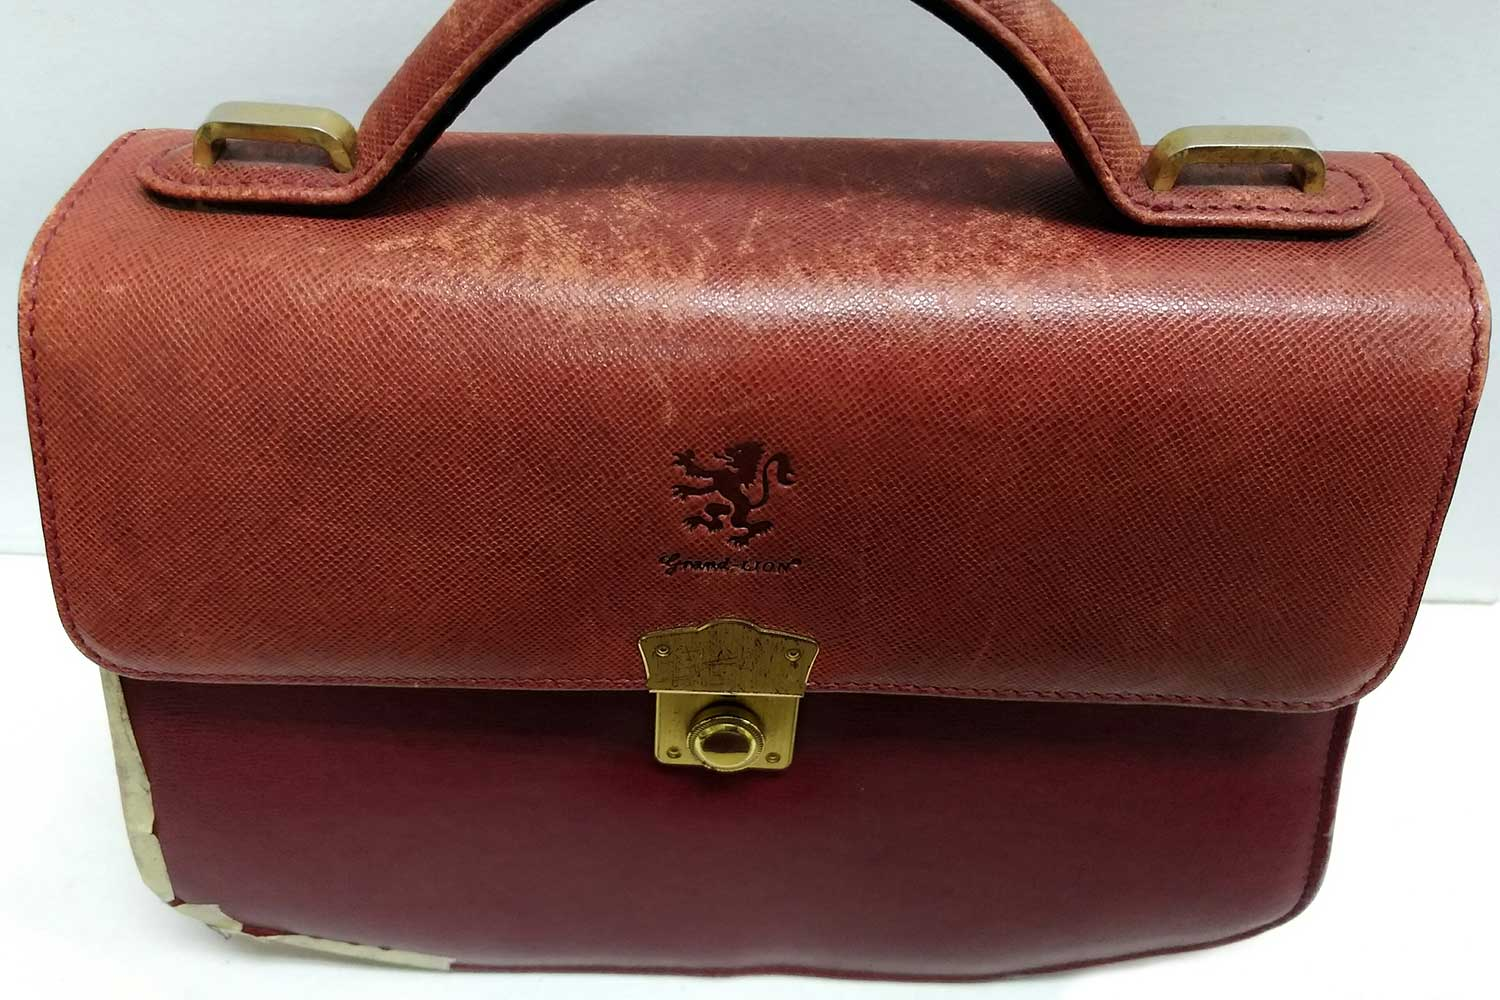 https://leather-pro.com/wp-content/uploads/2018/05/news_red_bag_before_1500.jpg